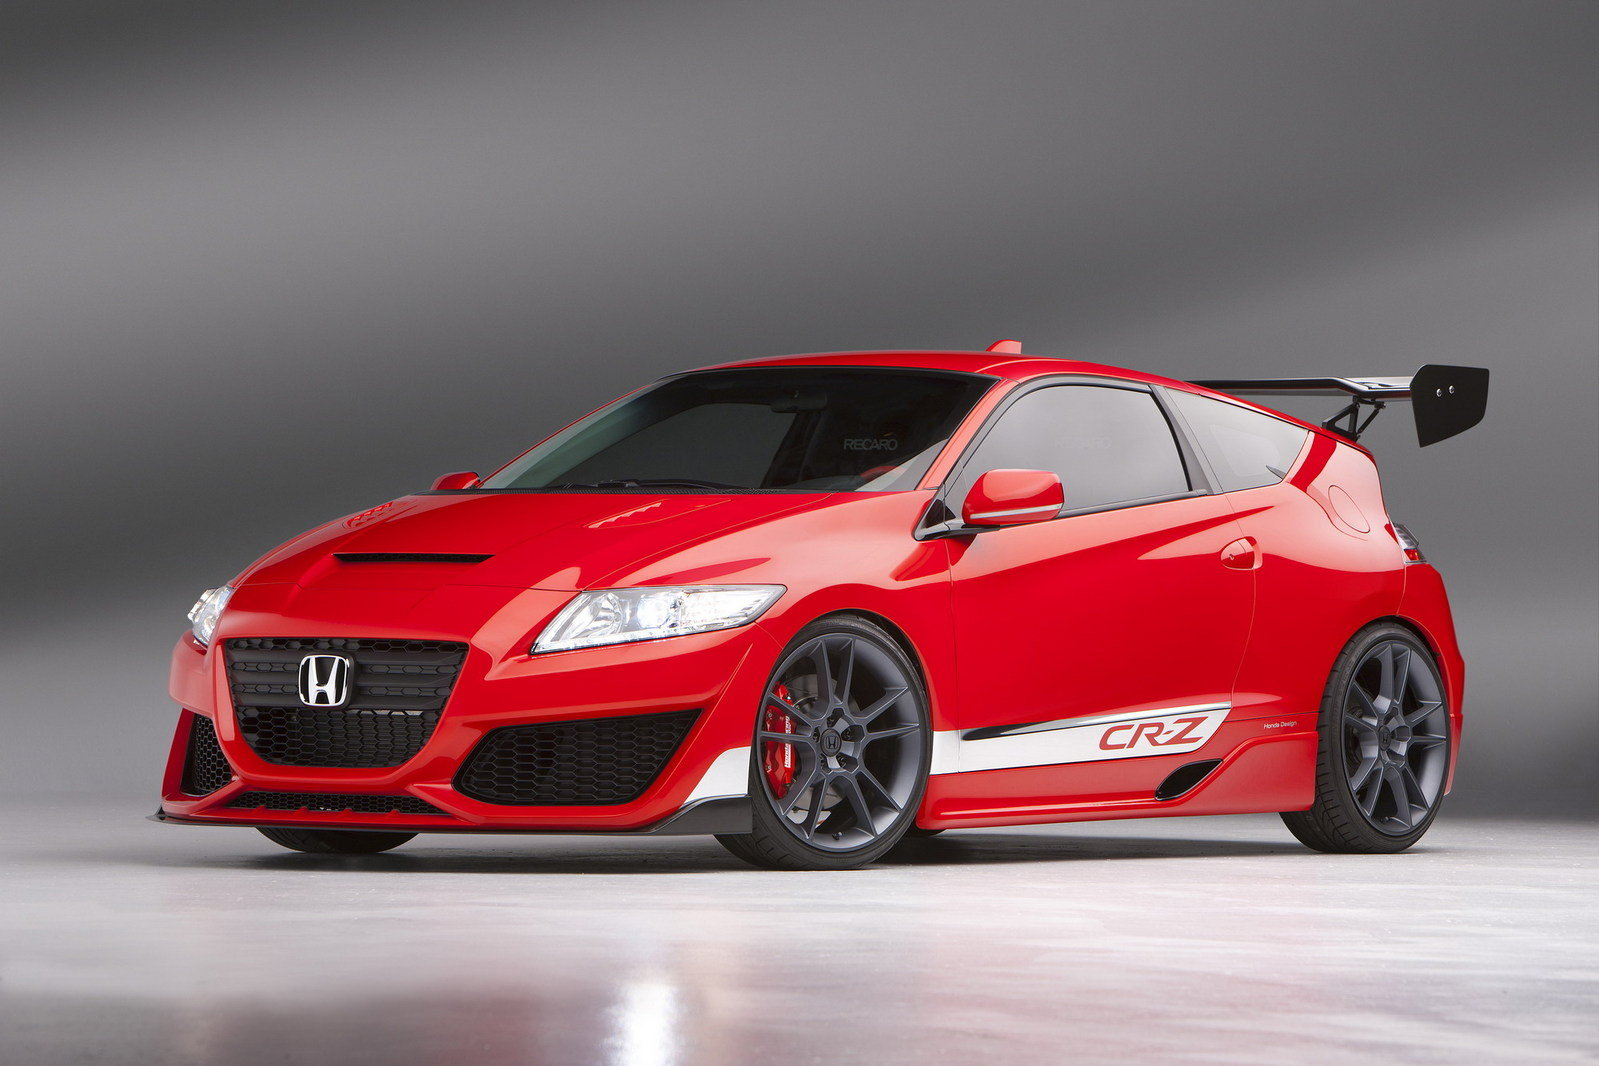 2010 honda cr z hybrid r concept picture 380176 car review top speed. Black Bedroom Furniture Sets. Home Design Ideas